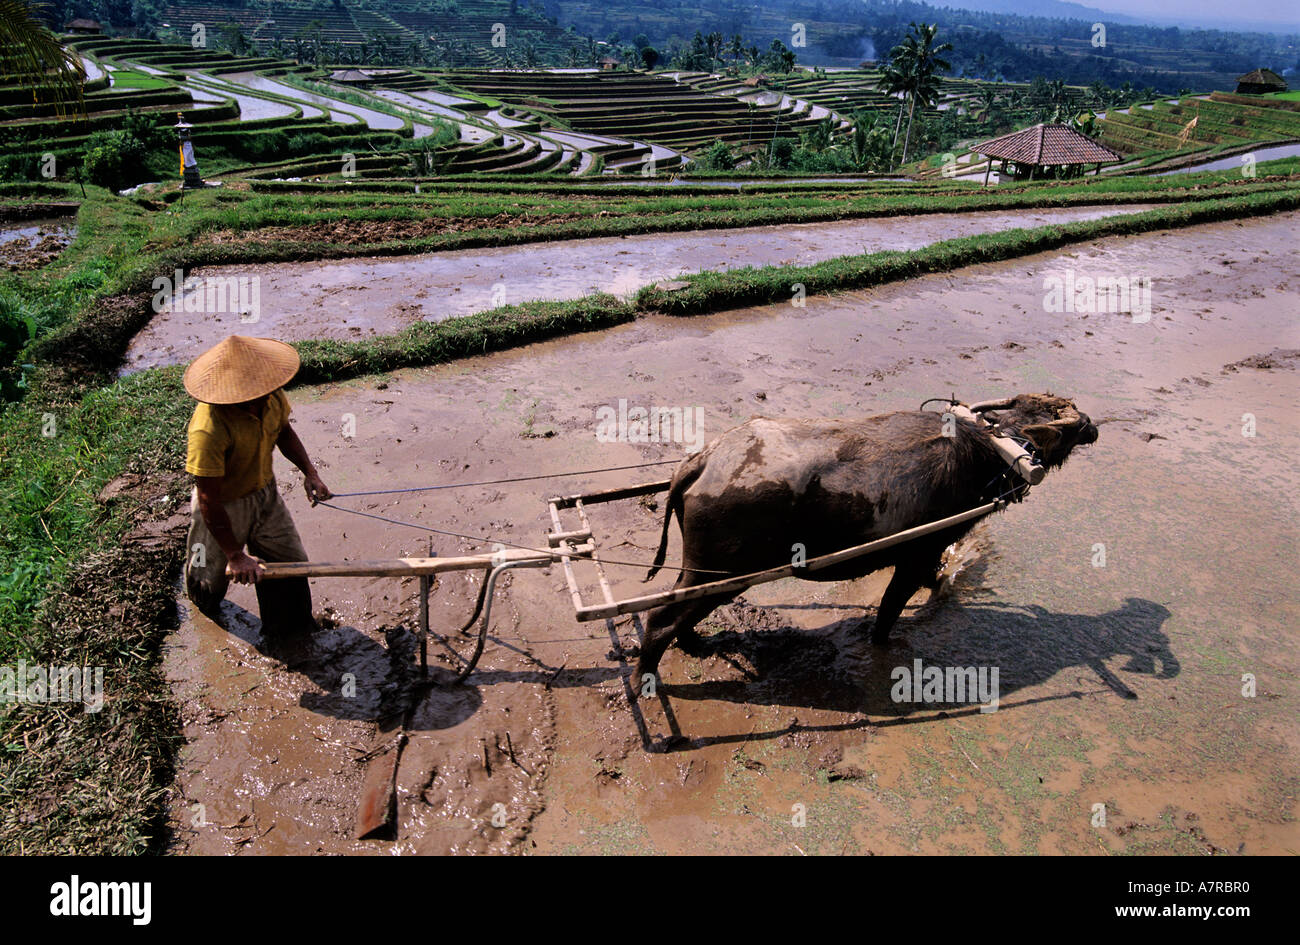 Indonesia, Bali island, ploughing in the rice plantations in terraces in the area of the Batukau mount - Stock Image